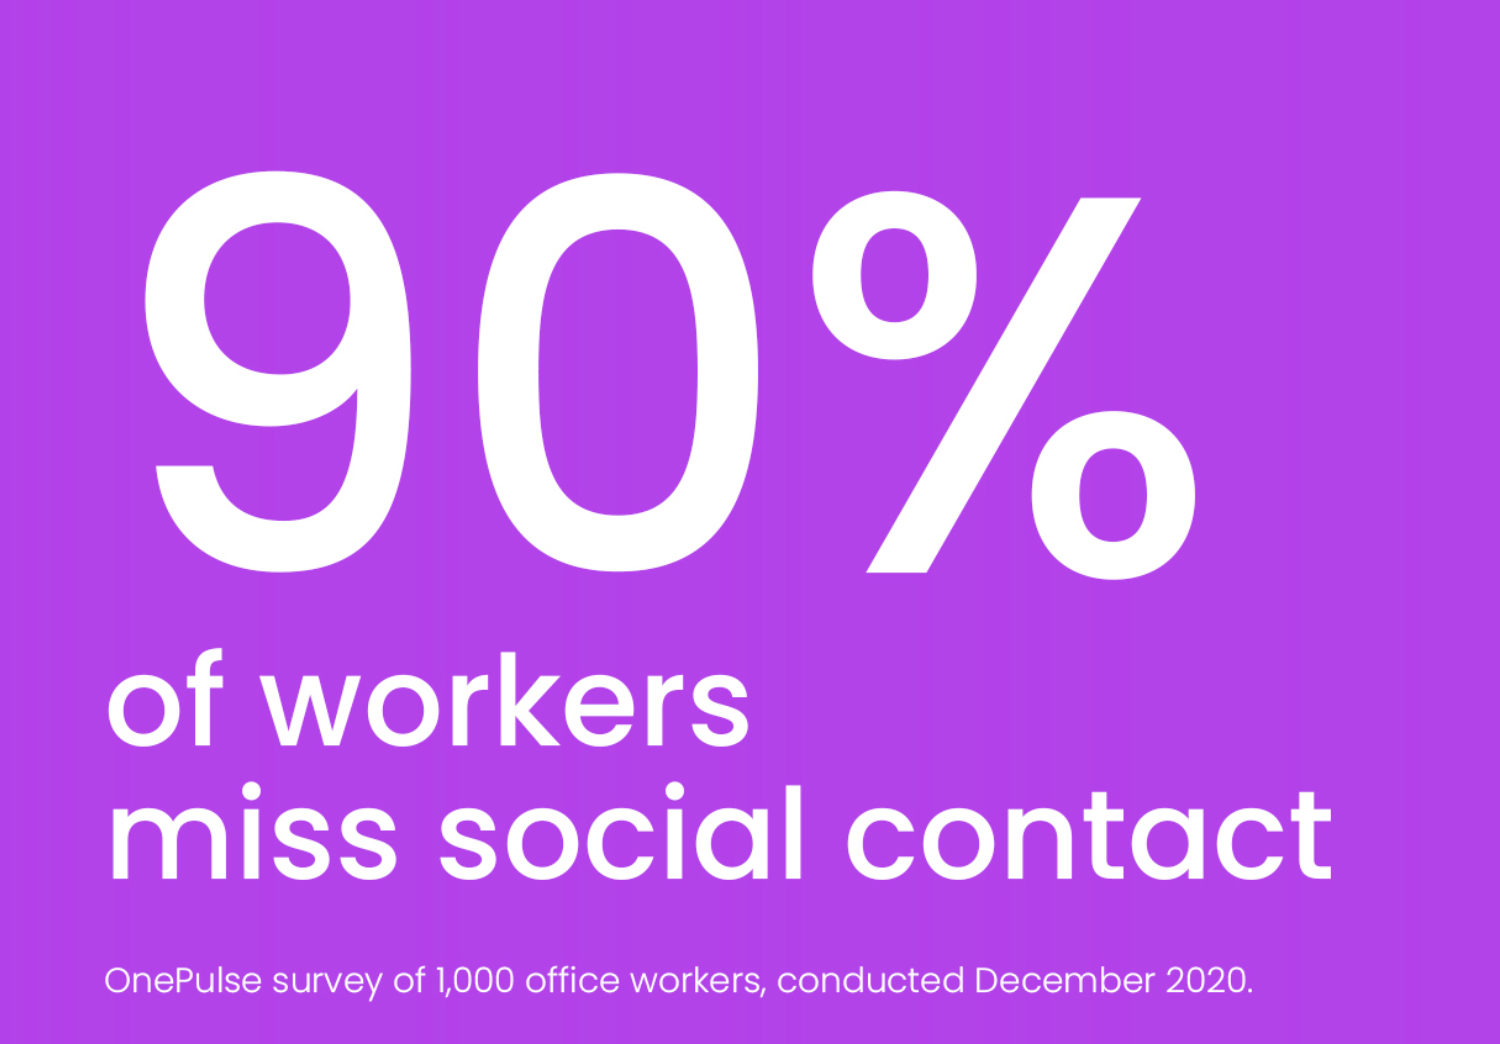 90% of workers miss social contact